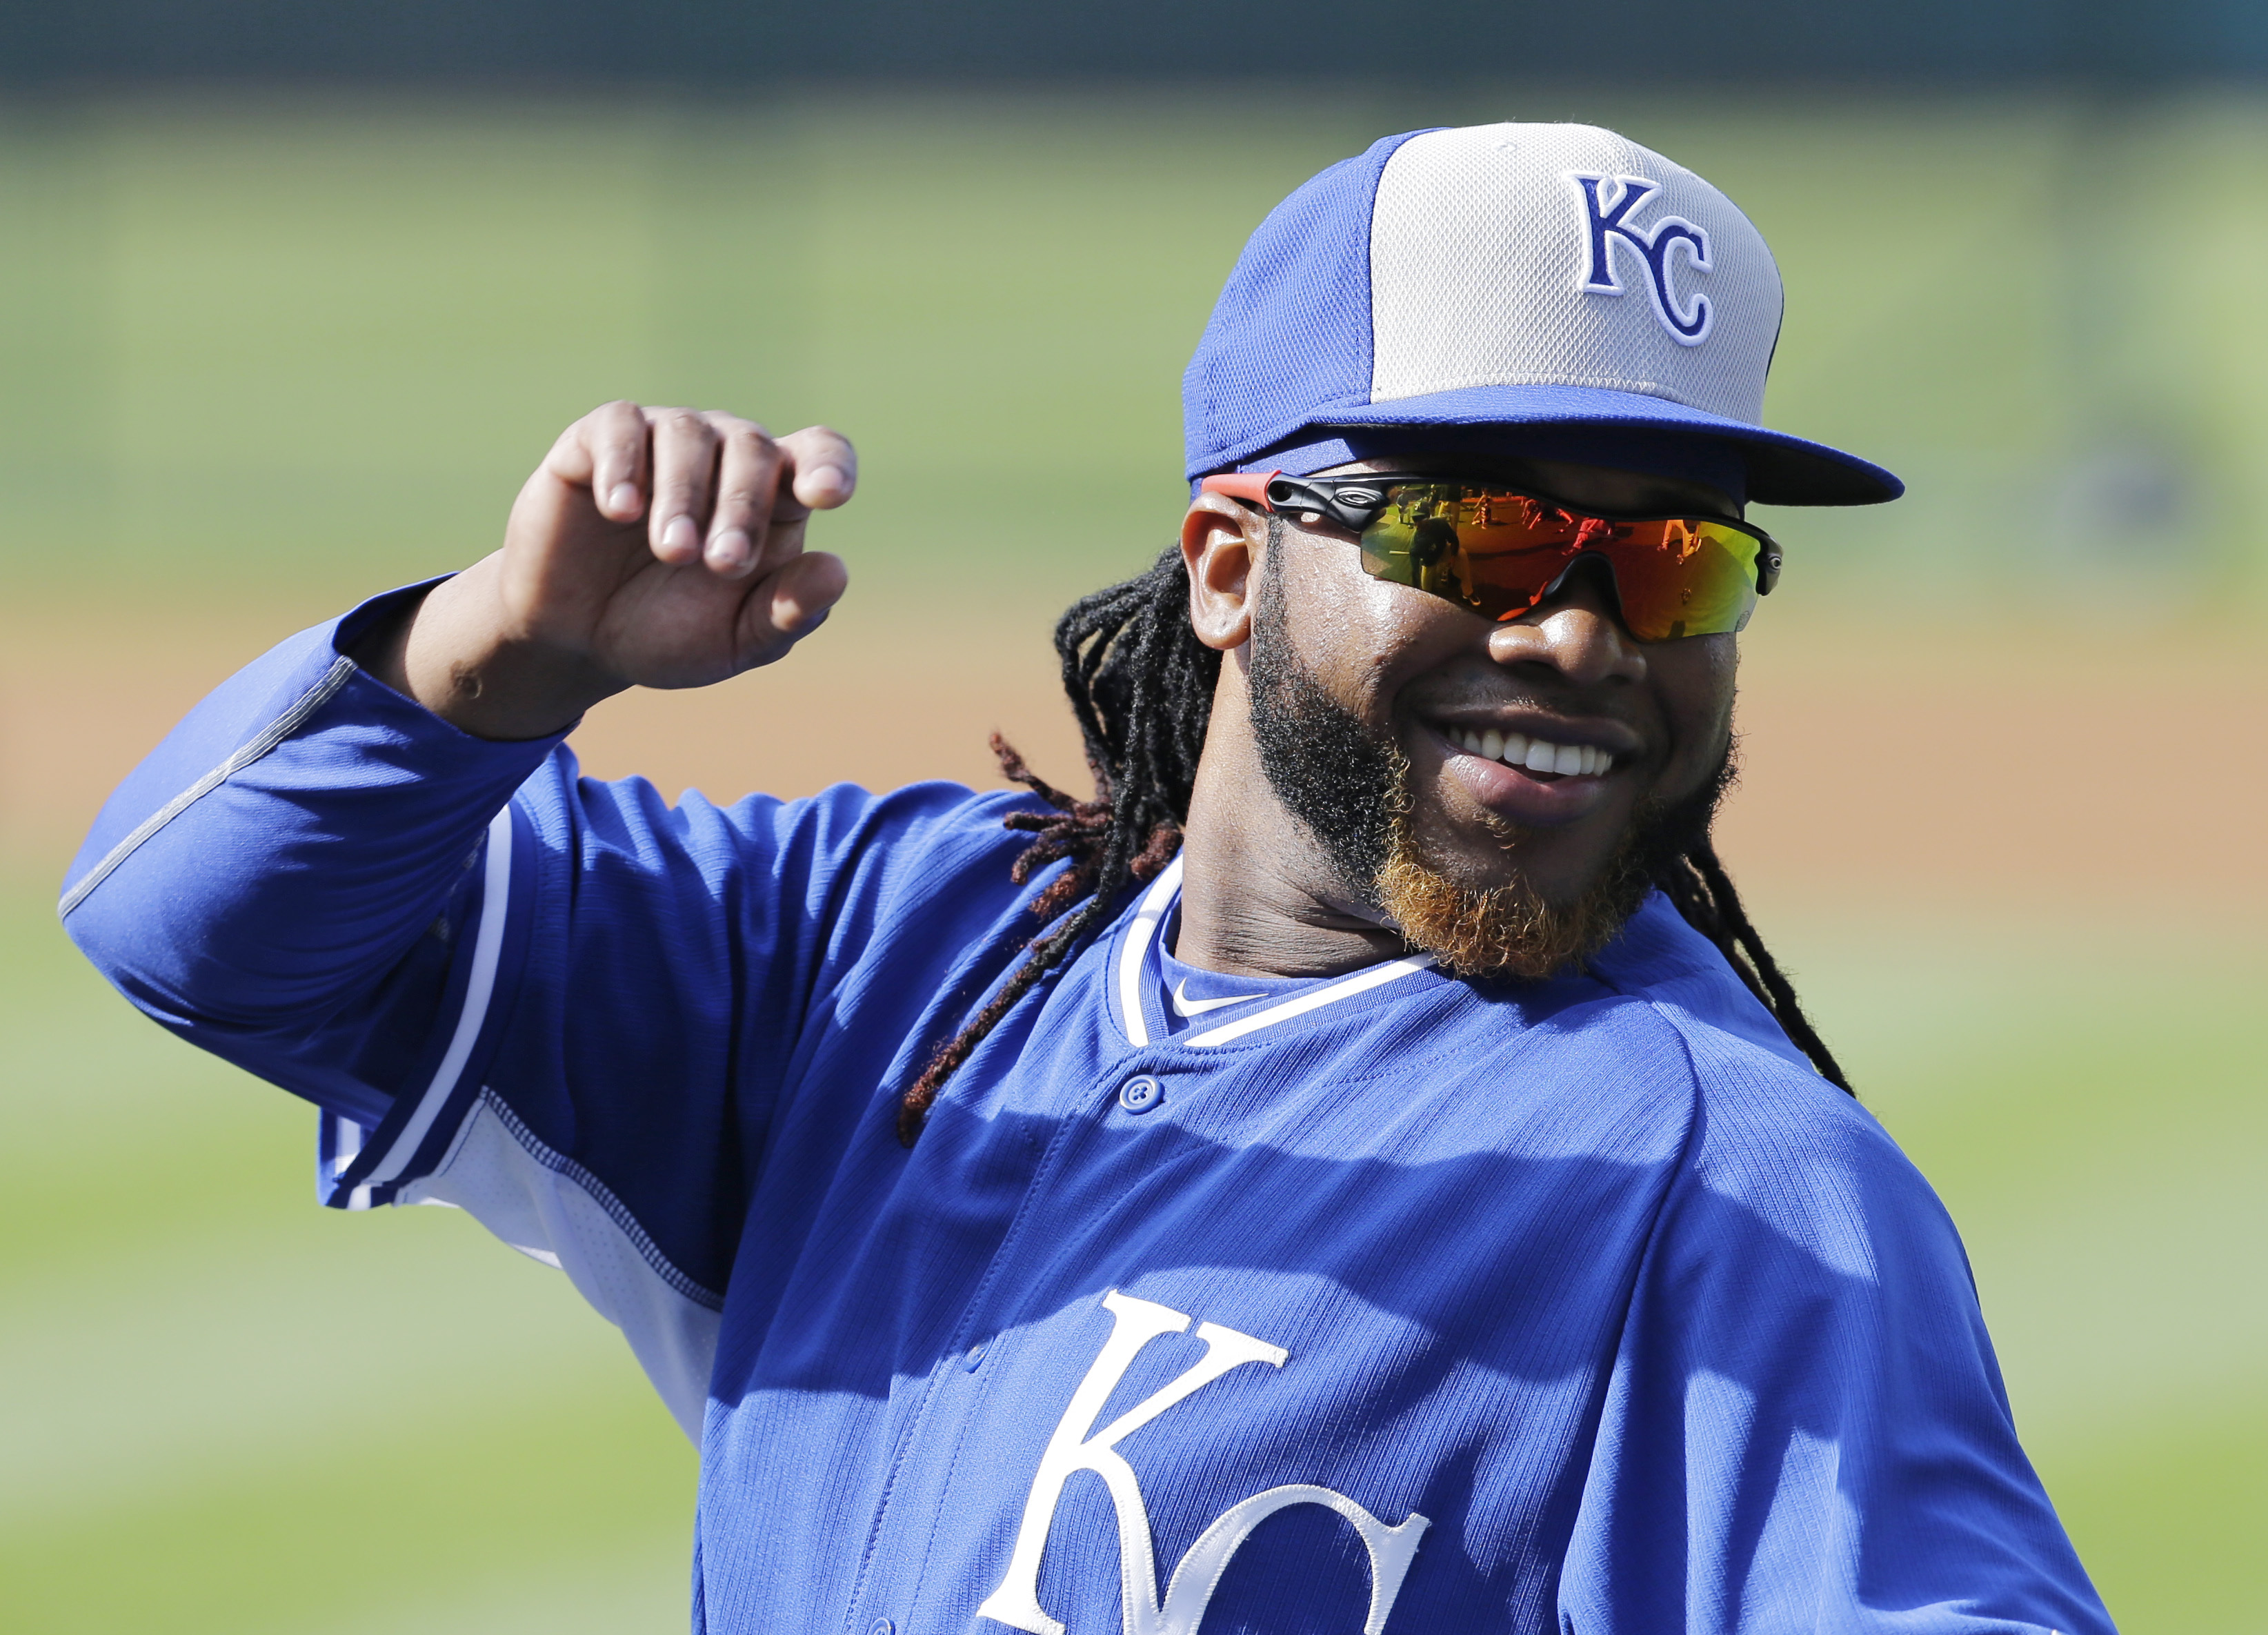 Kansas City Royals' Johnny Cueto stretches and smiles before the Royals play the Cleveland Indians in a baseball game, Tuesday, July 28, 2015, in Cleveland. (AP Photo/Tony Dejak)